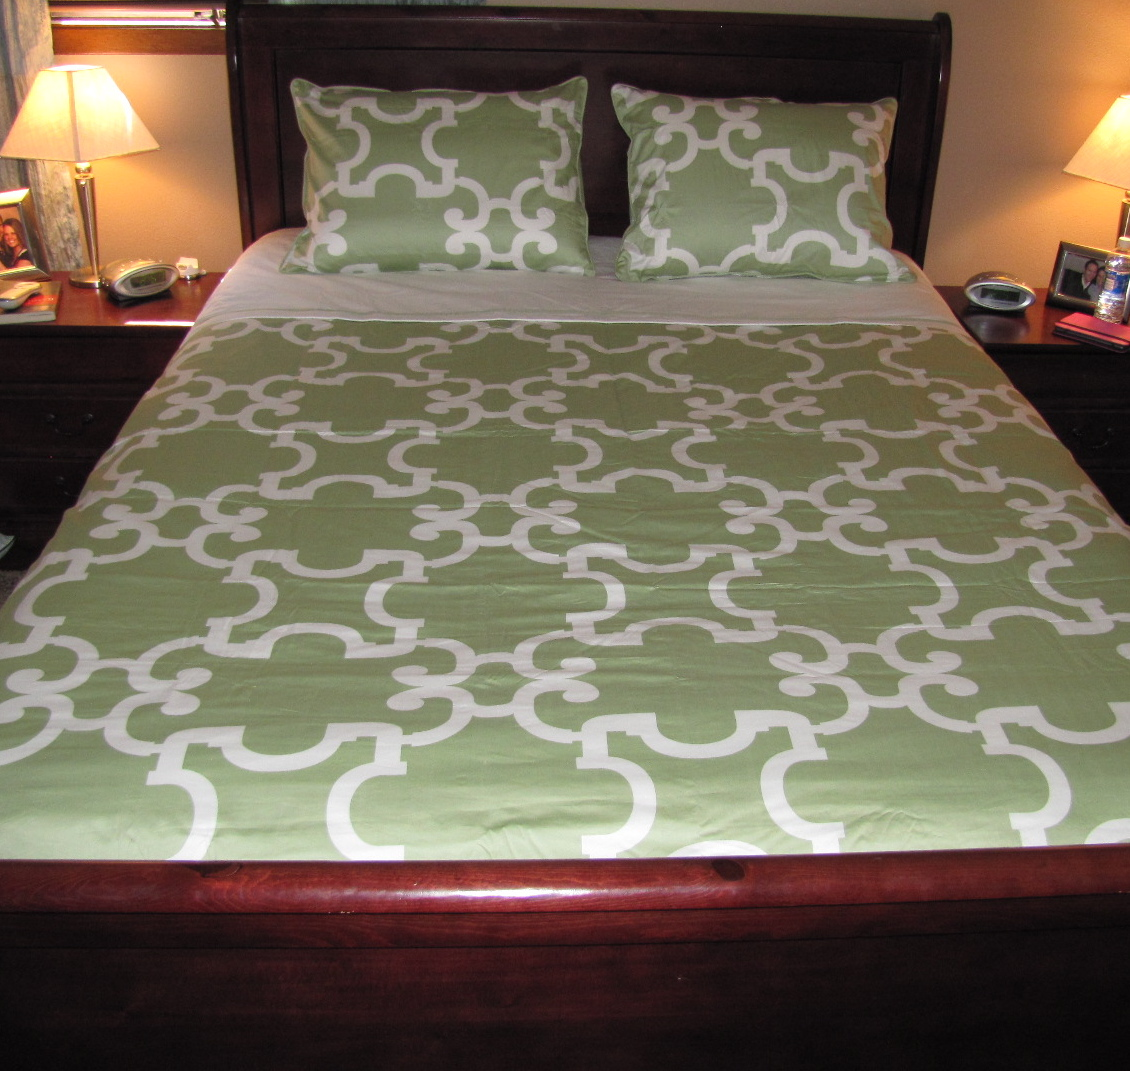 I have been really impressed with the quality design and convenience this Signature Duvet Set from Crane u0026 Canopy offers! The color is absolutely beautiful ... & Crane u0026 Canopy Signature Duvet Cover ~ Review u0026 SHORT Giveaway